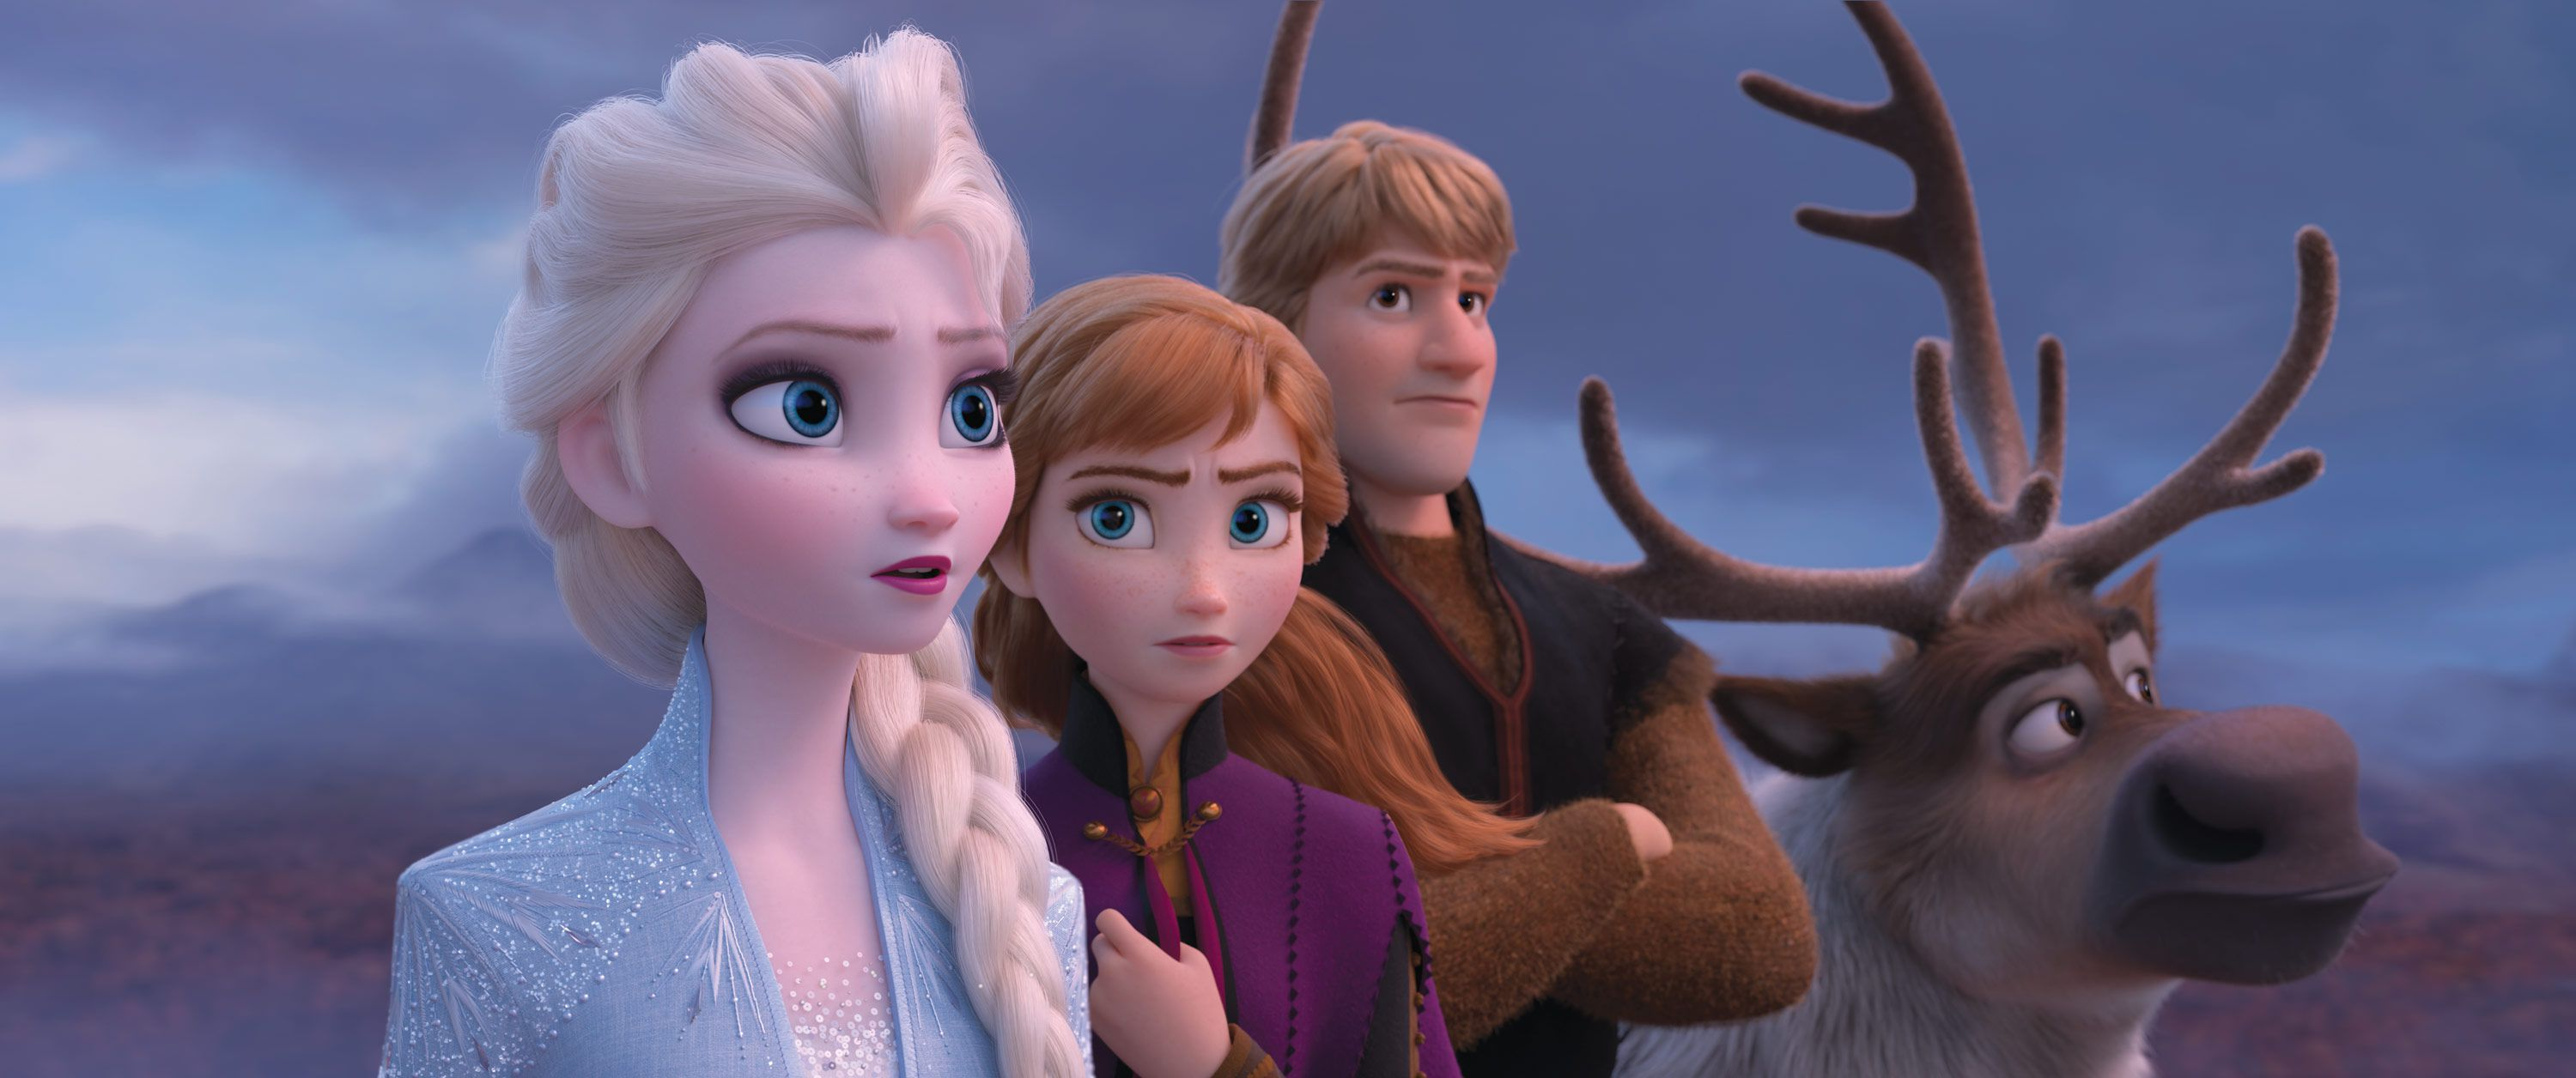 Frozen 2 release date cast plot